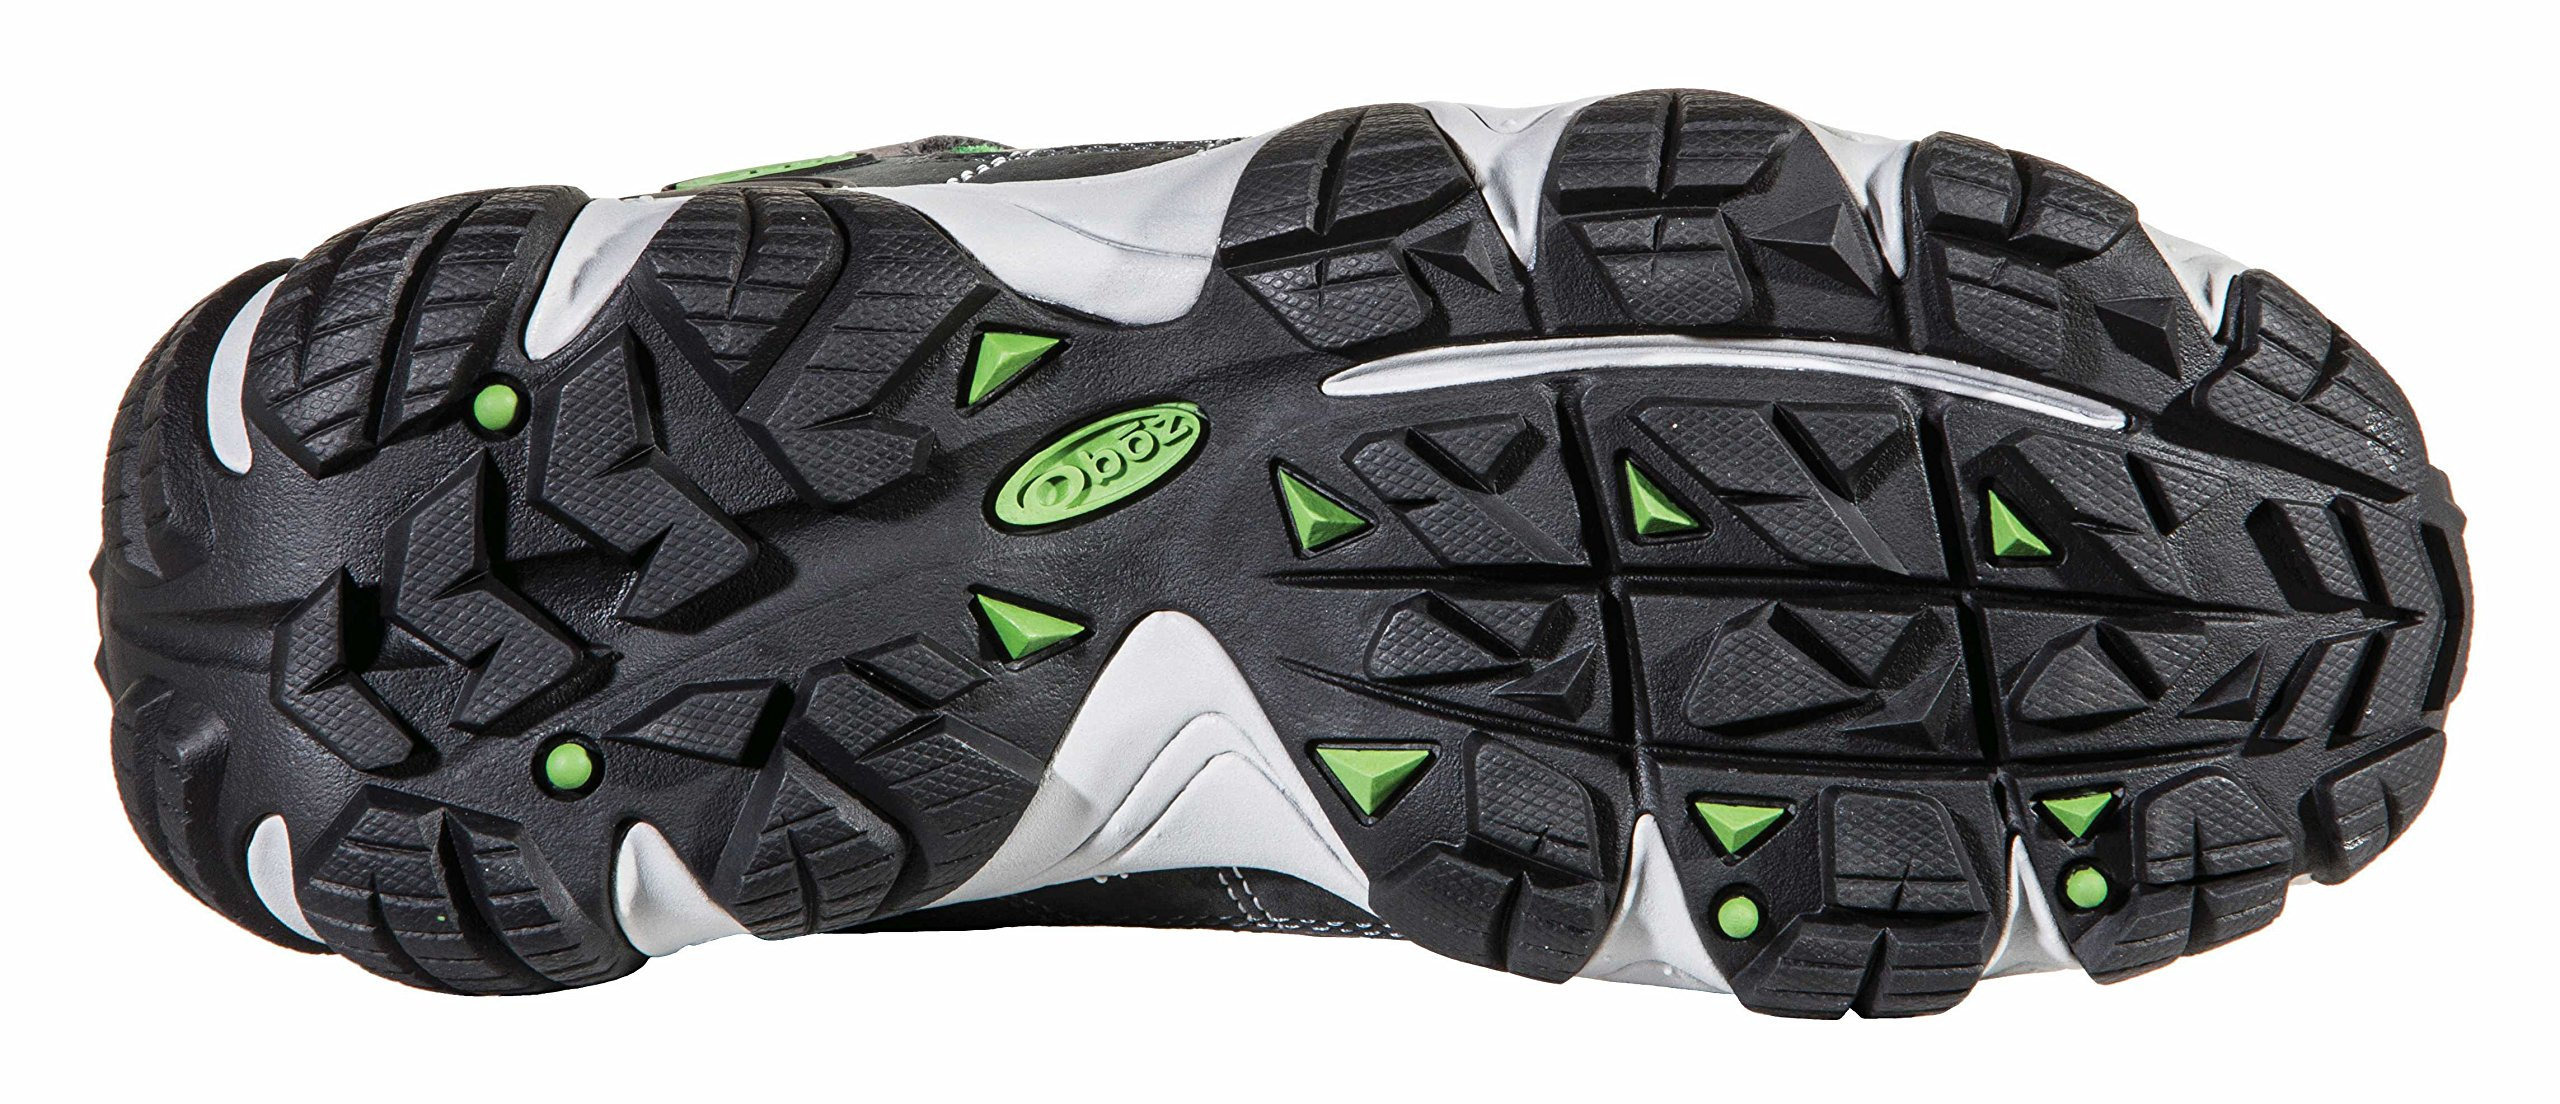 Oboz Women's Sawtooth Low Hiking Shoe,Clover,7 M US by Oboz (Image #3)